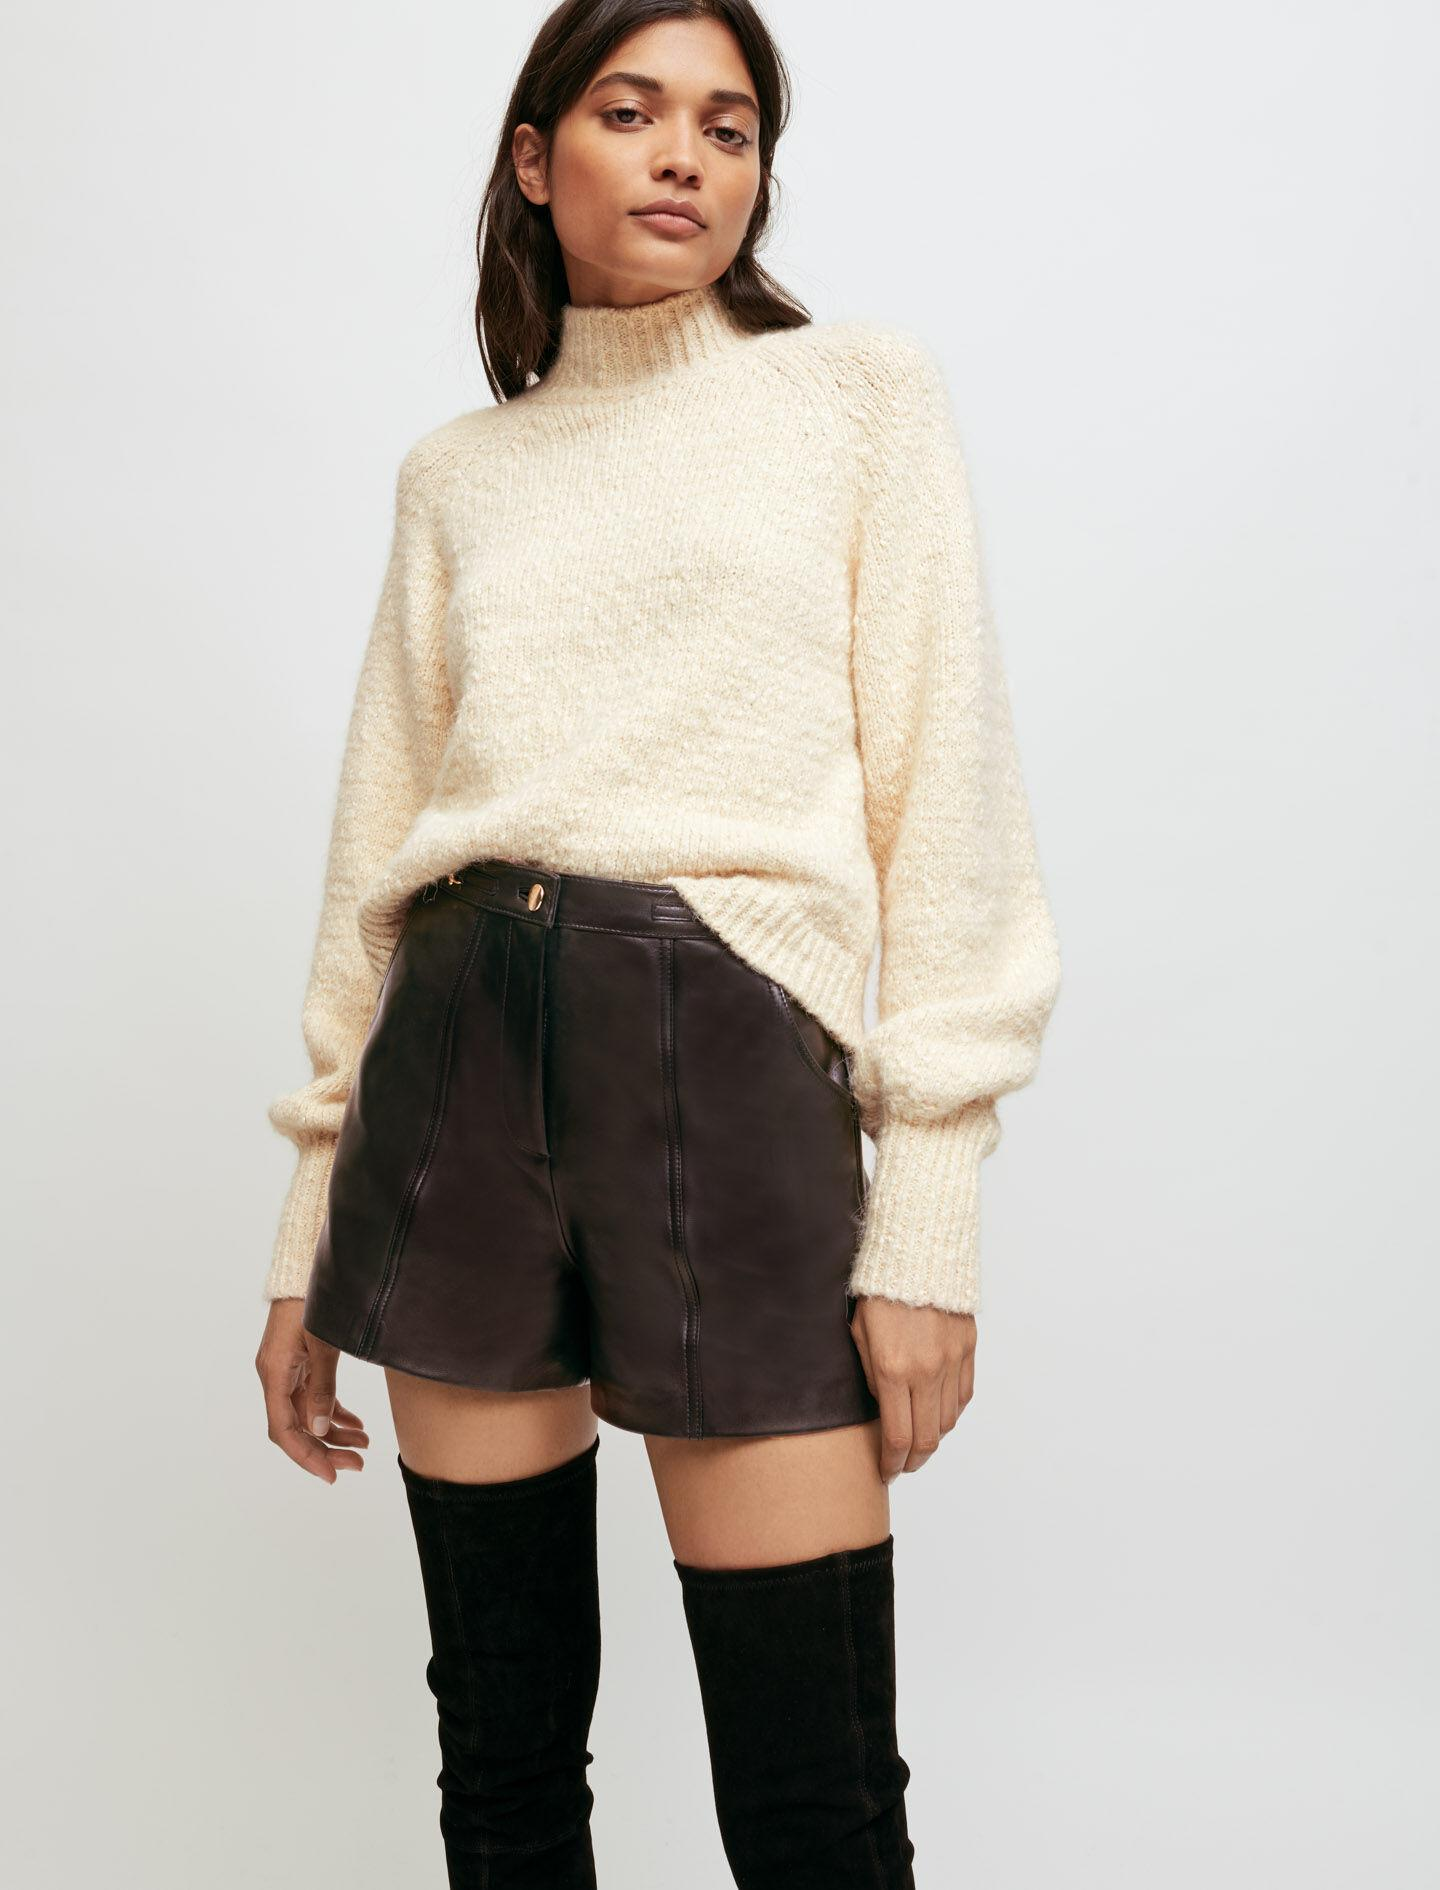 DECORATIVE KNIT PULLOVER WITH COLLAR